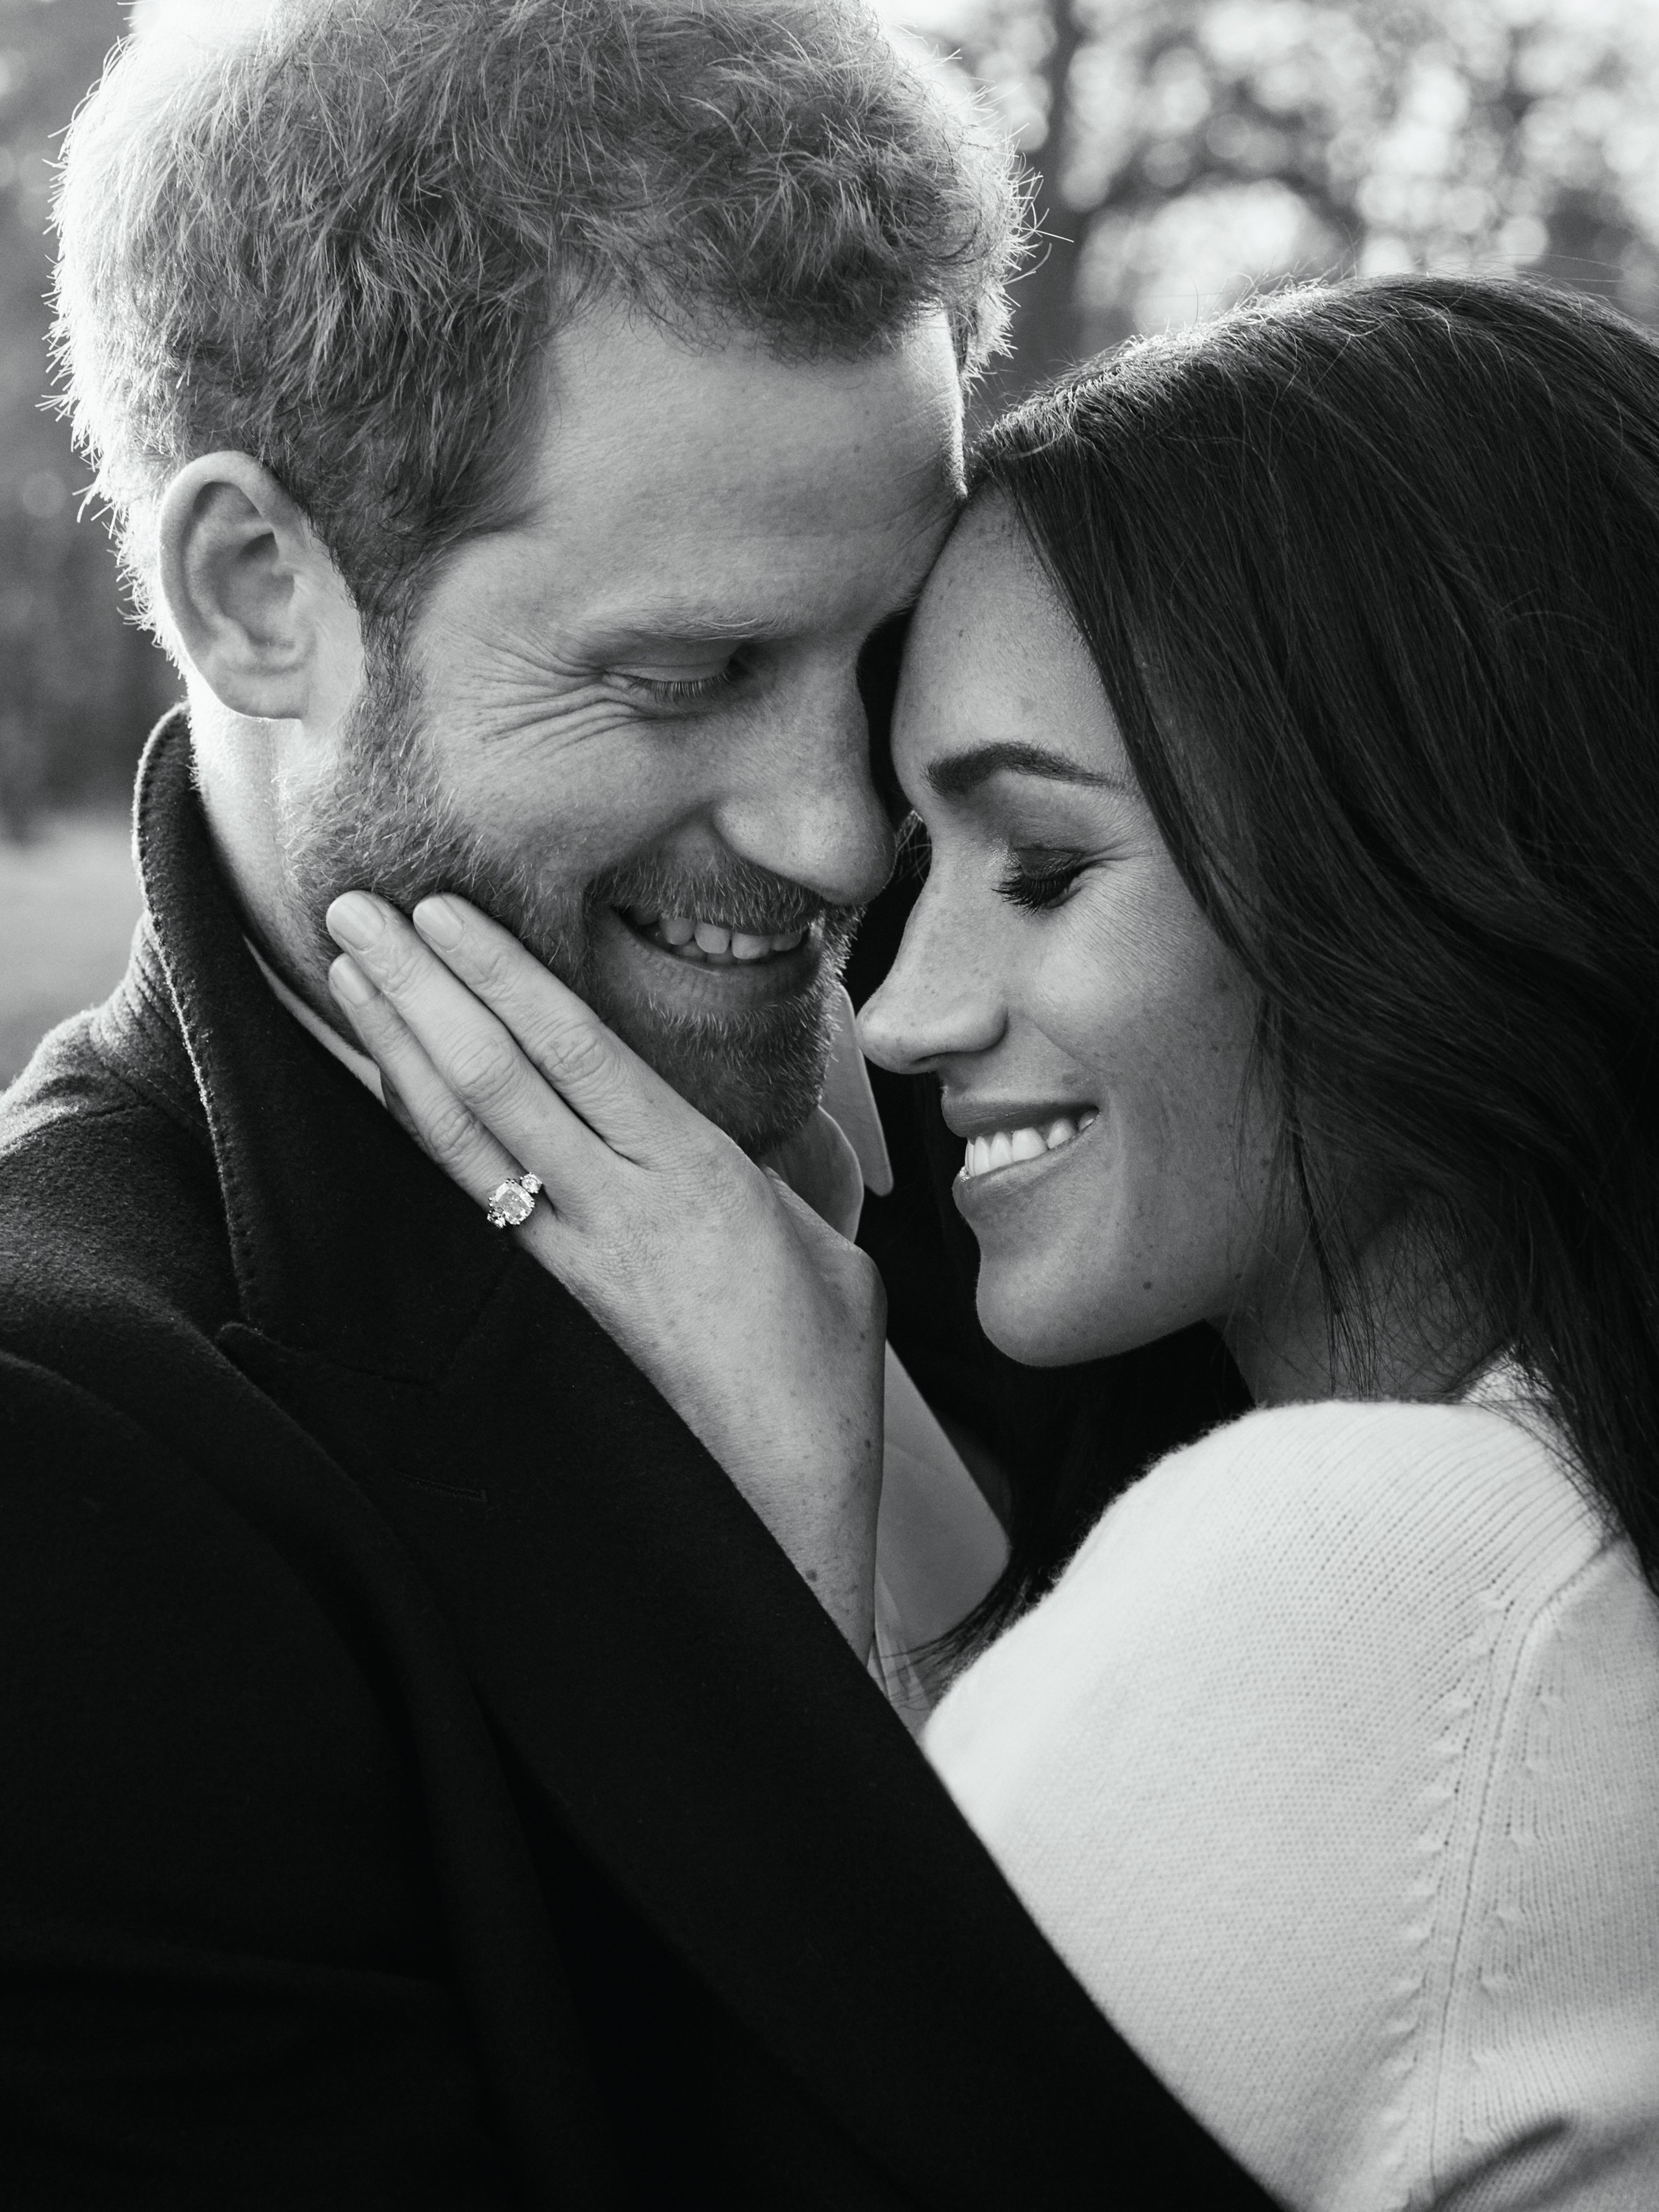 Prince Harry and Meghan Markle pose for their one of two official engagement photos at Frogmore House in December, 2017 in Windsor, United Kingdom | Photo: Getty Images